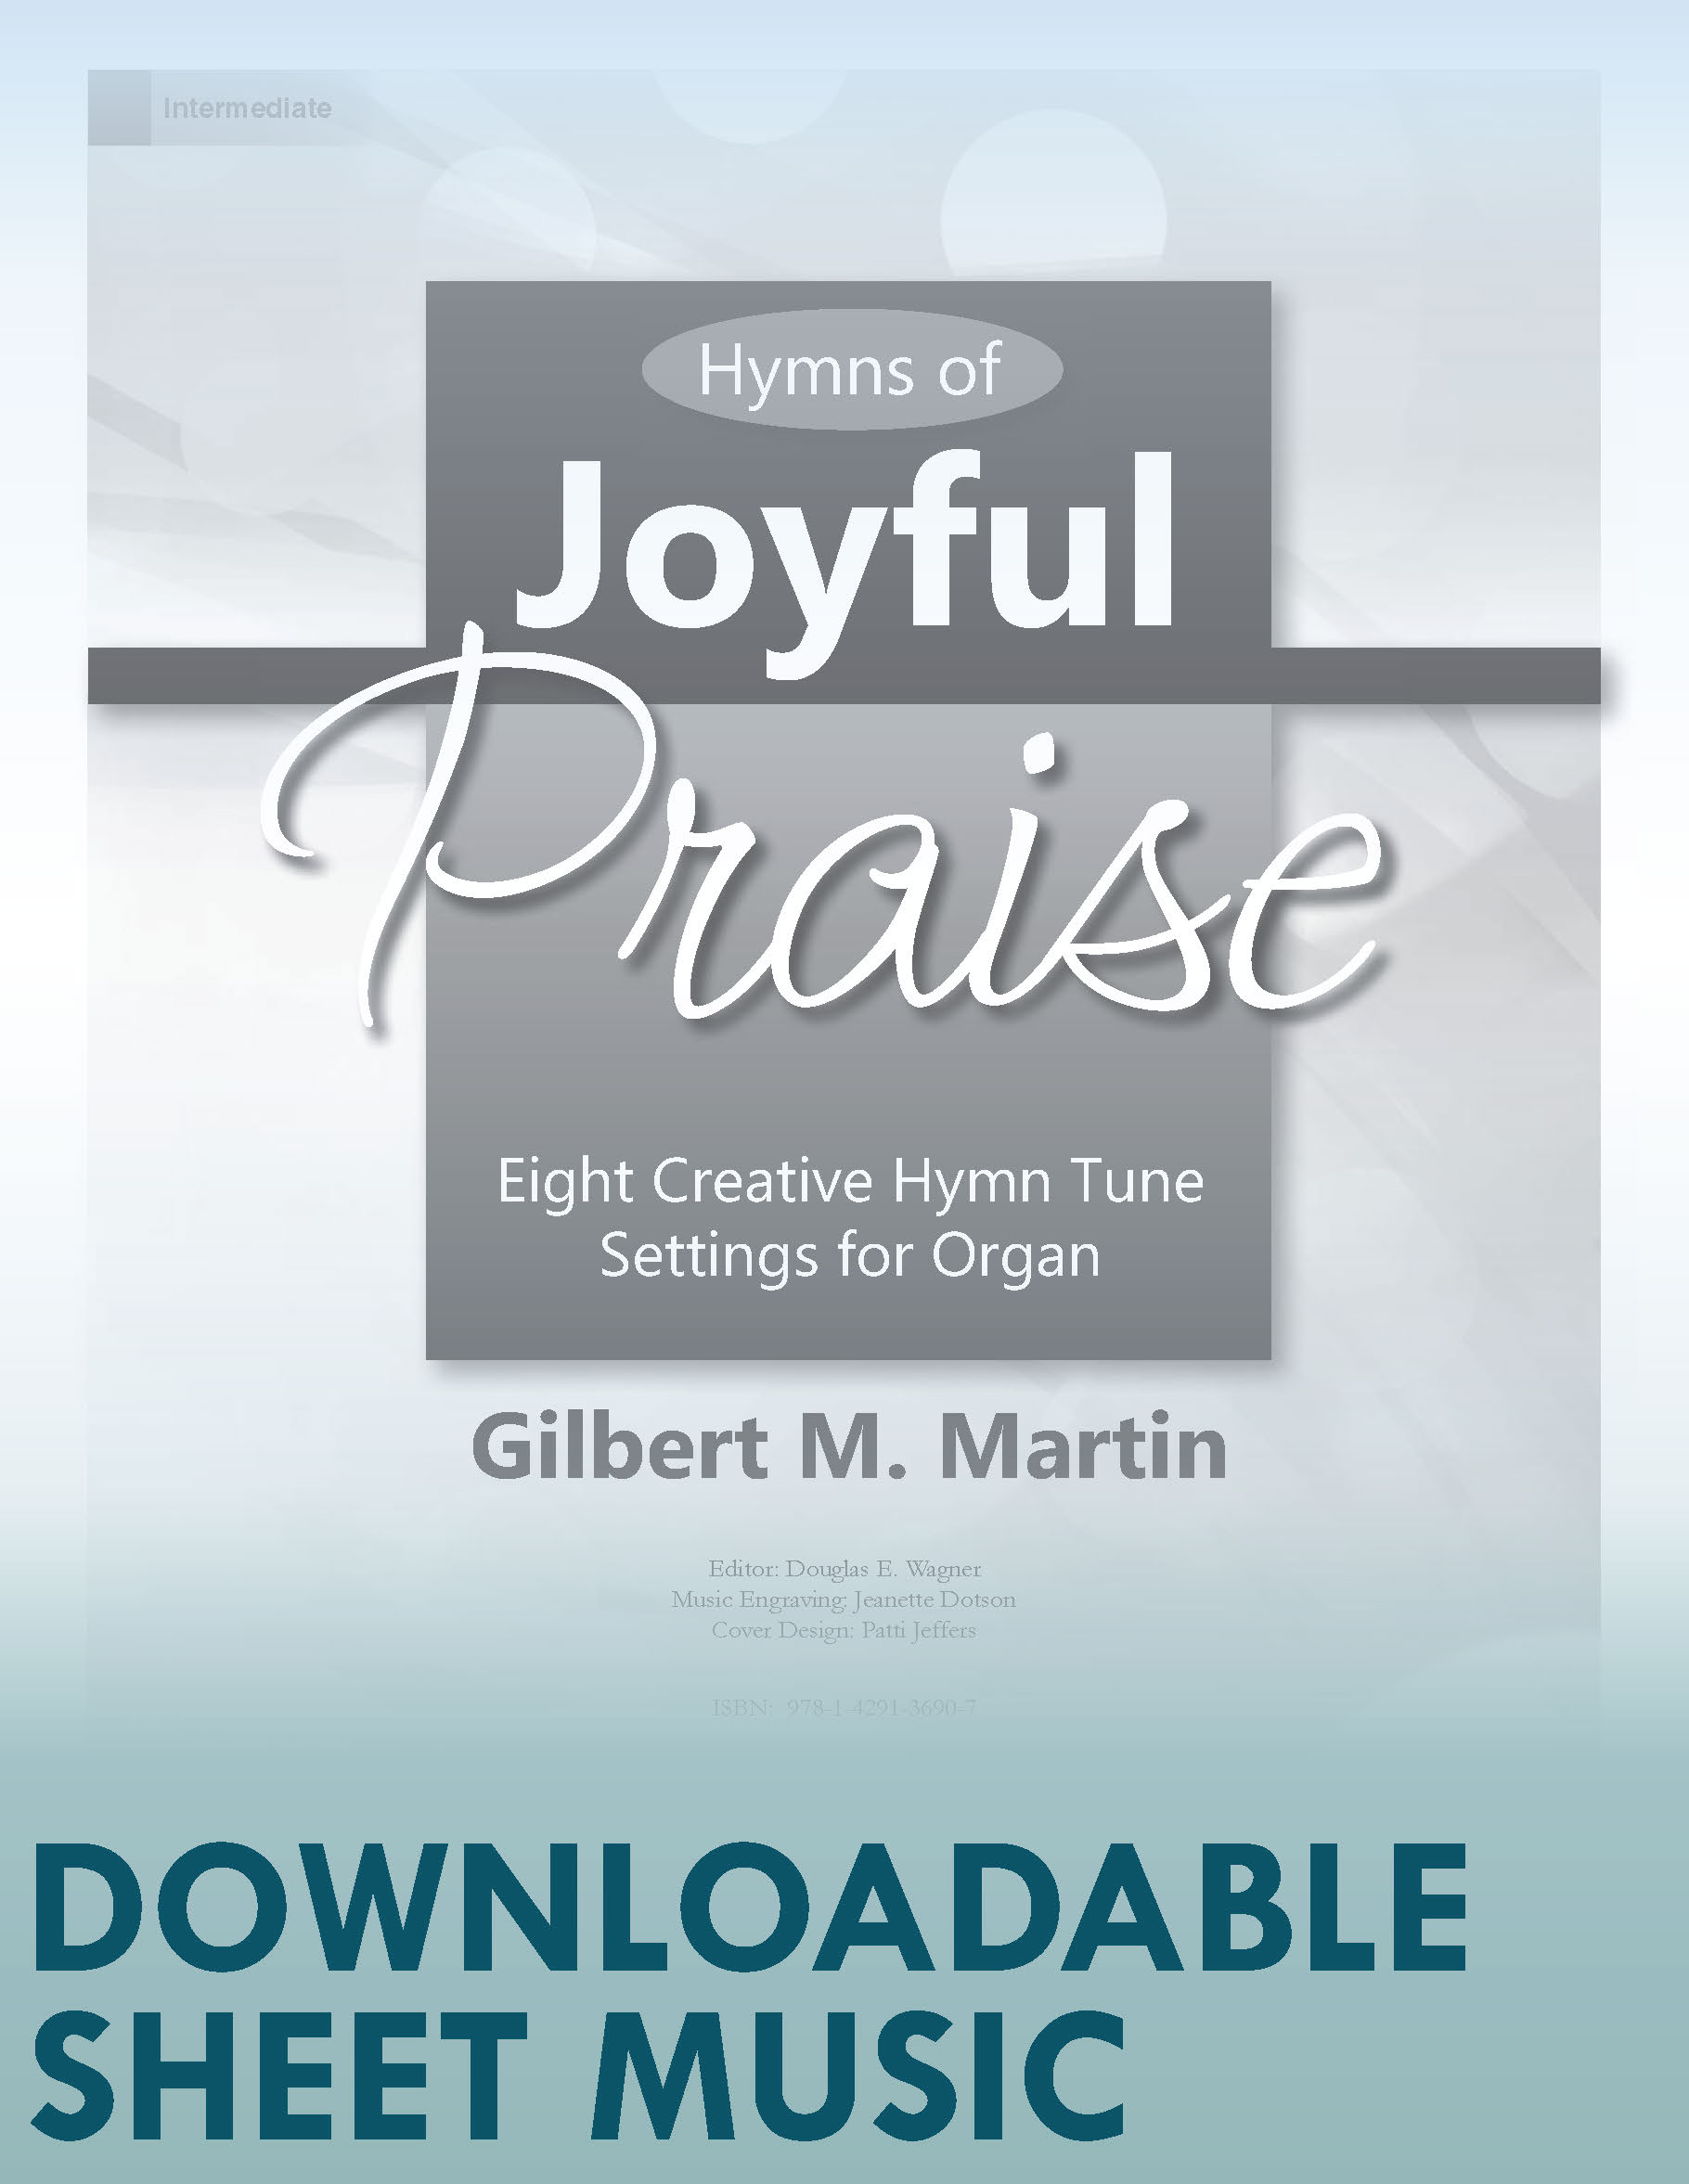 Hymns of Joyful Praise - Digital Download